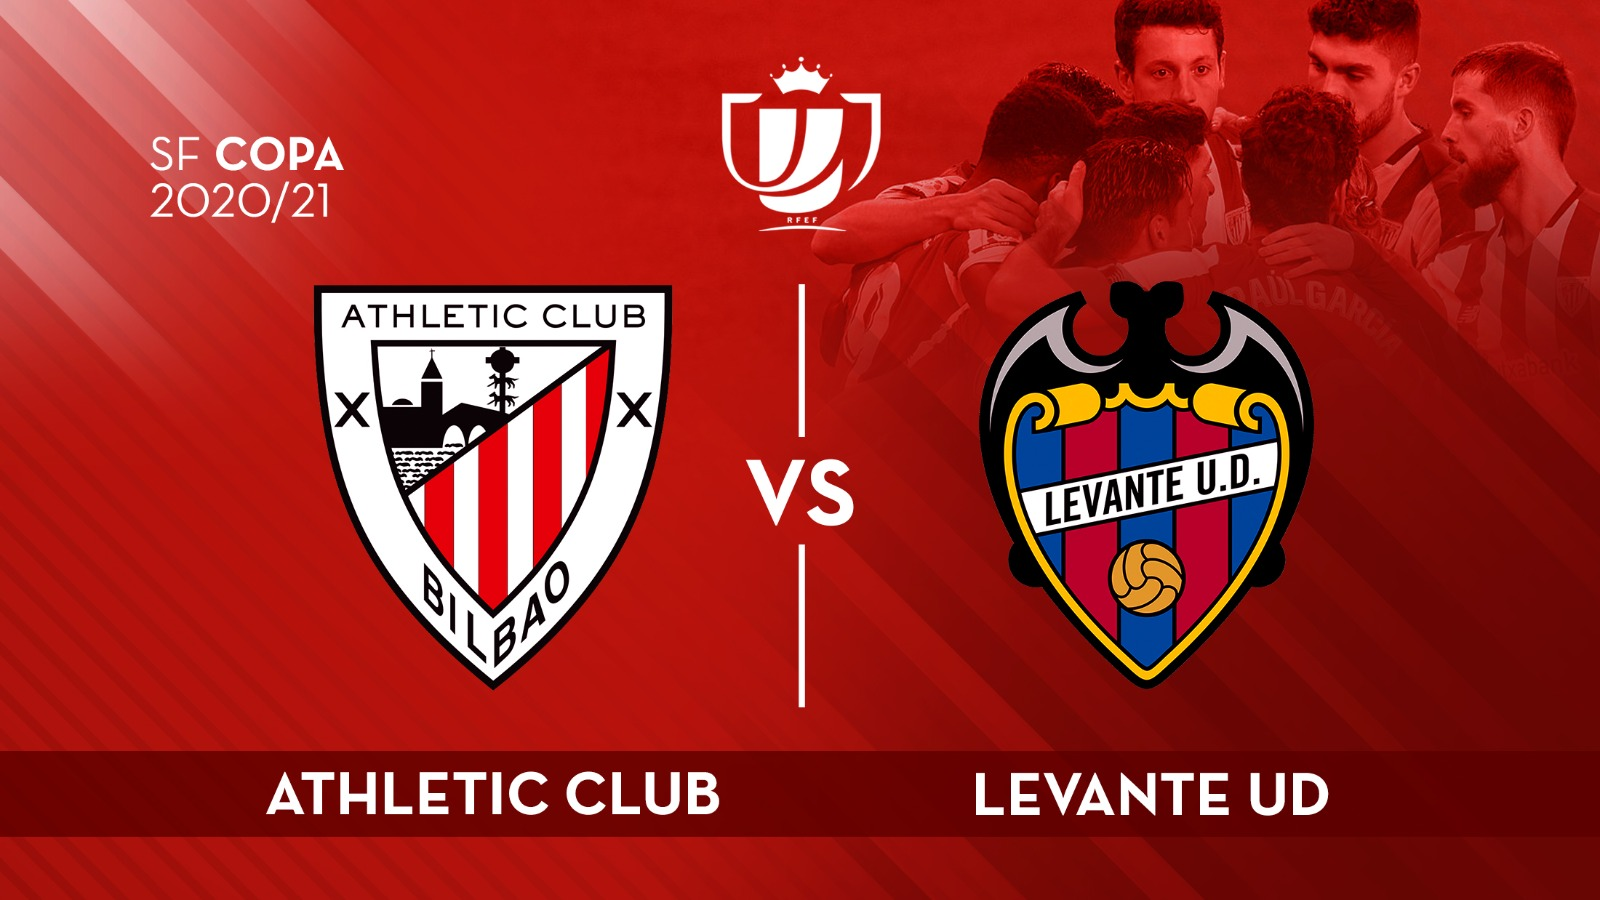 Athletic draw Levante UD in Copa 20-21 semi-finals